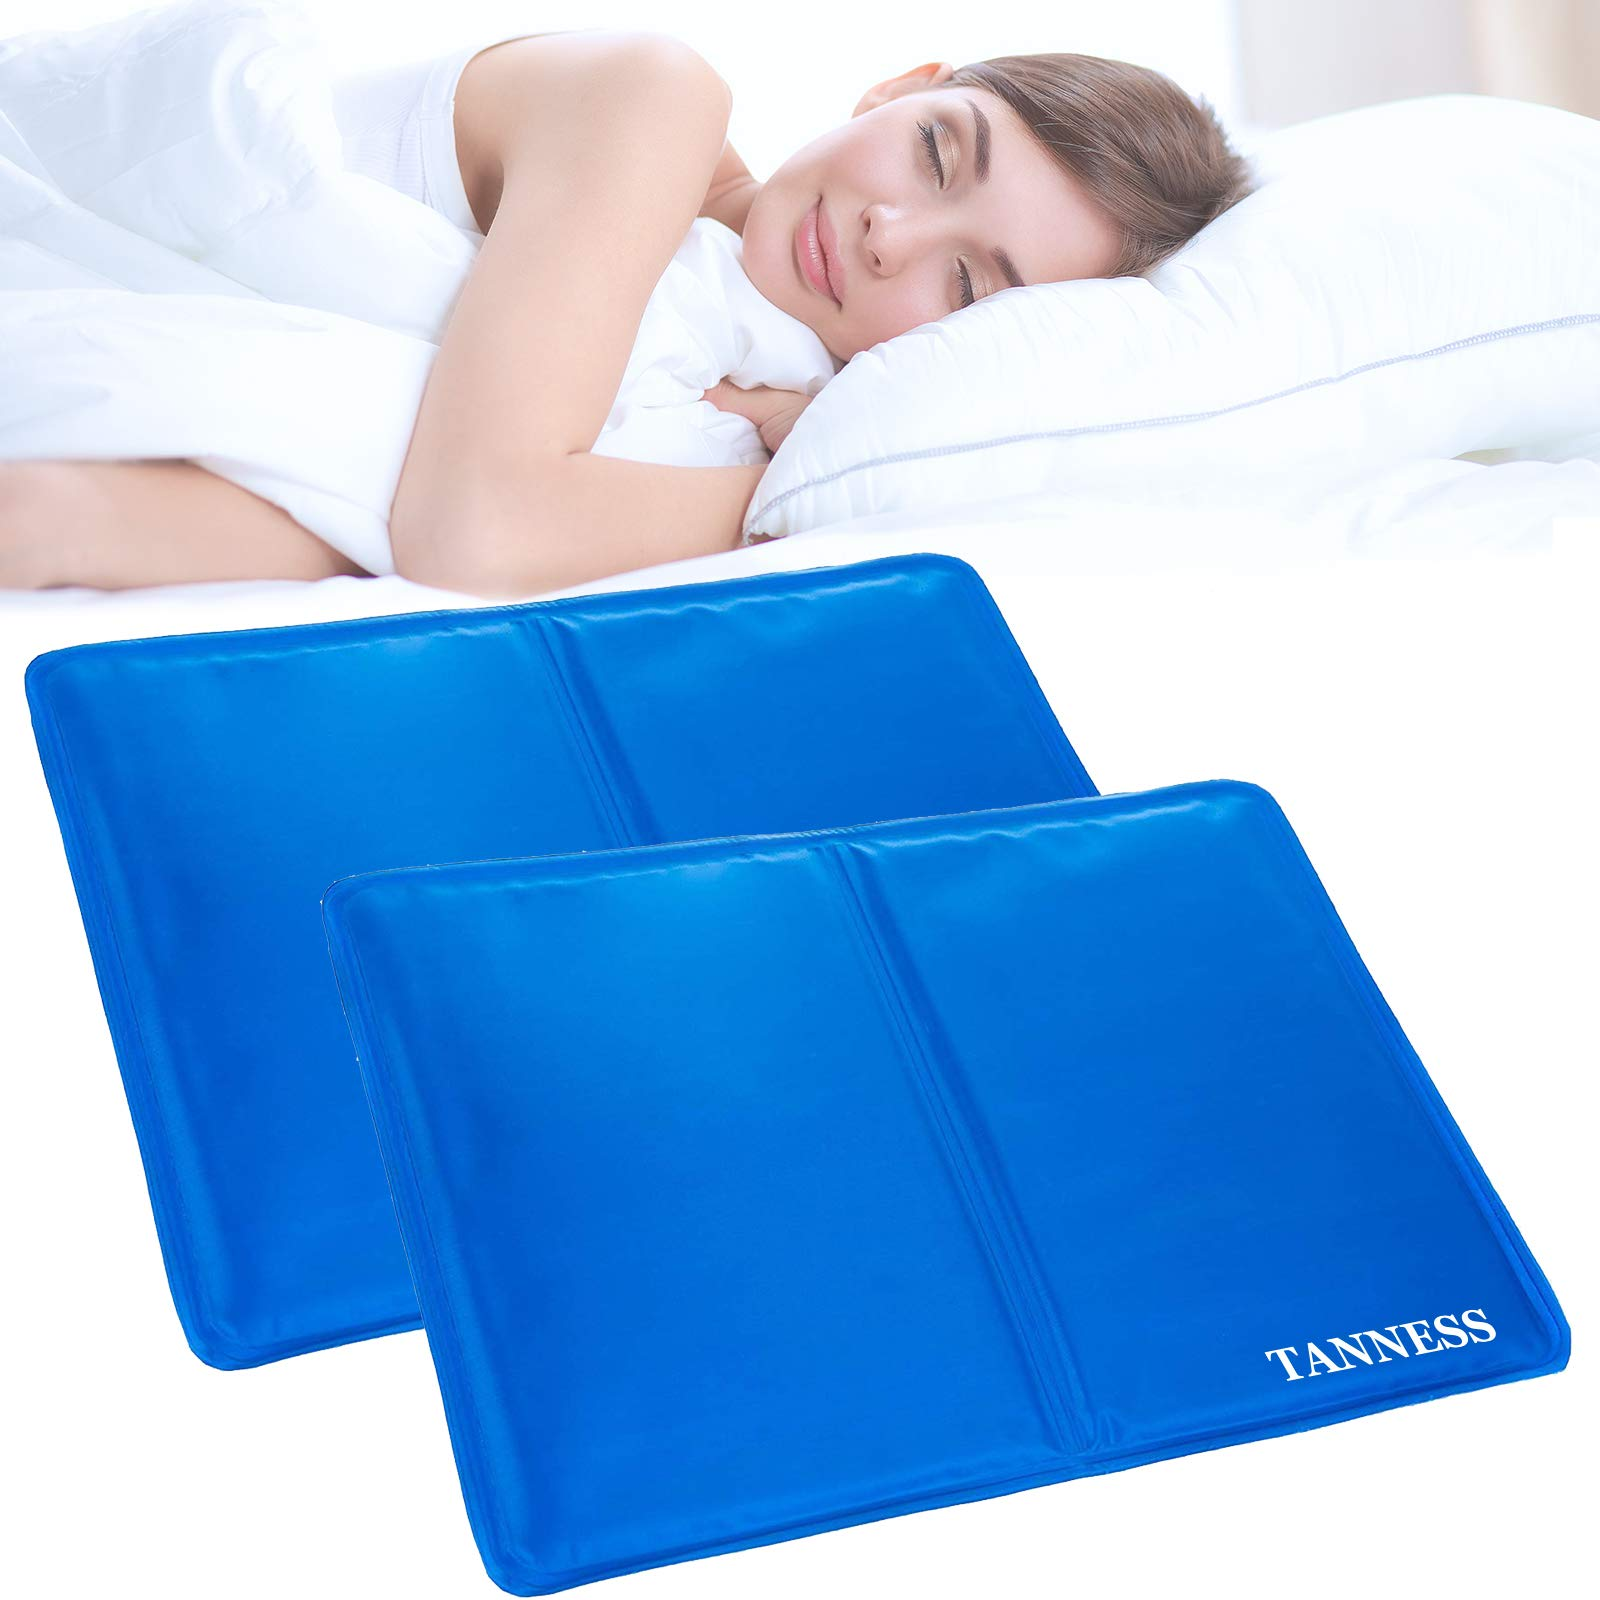 Tanness 2 Pack Magic Multi-Function Cool Jelly Pad Cushion Pillow Mat Absorbs and Dissipates Heat - Helps Improve Quality of Sleep & Optimal Sleeping Temperature